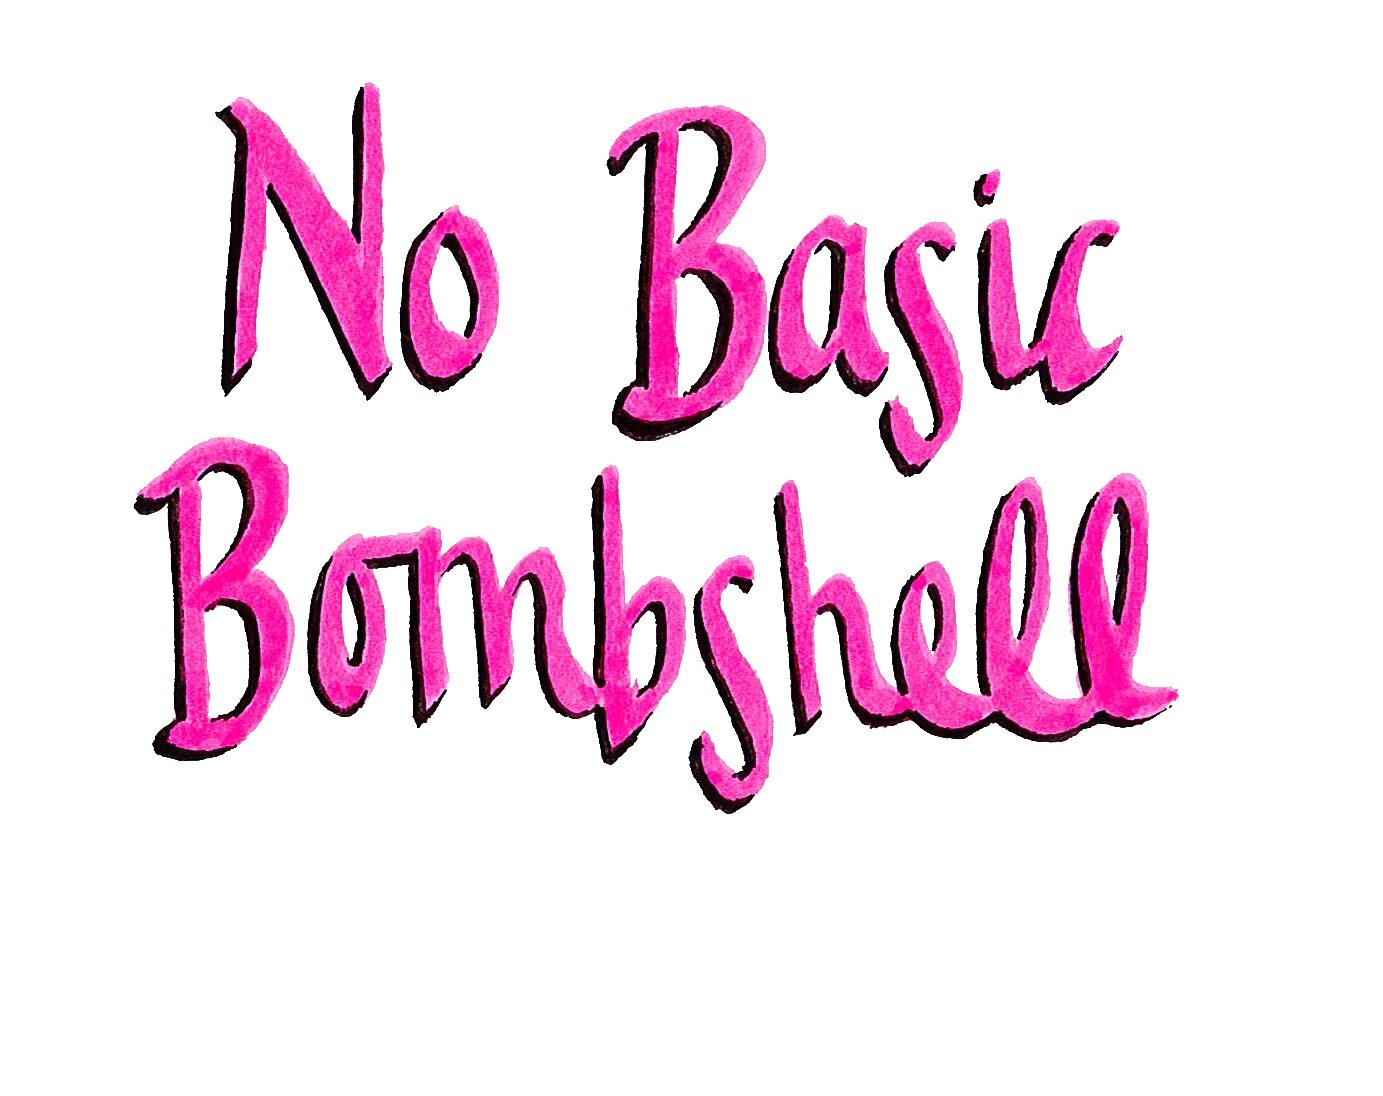 NO BASIC BOMBSHELL